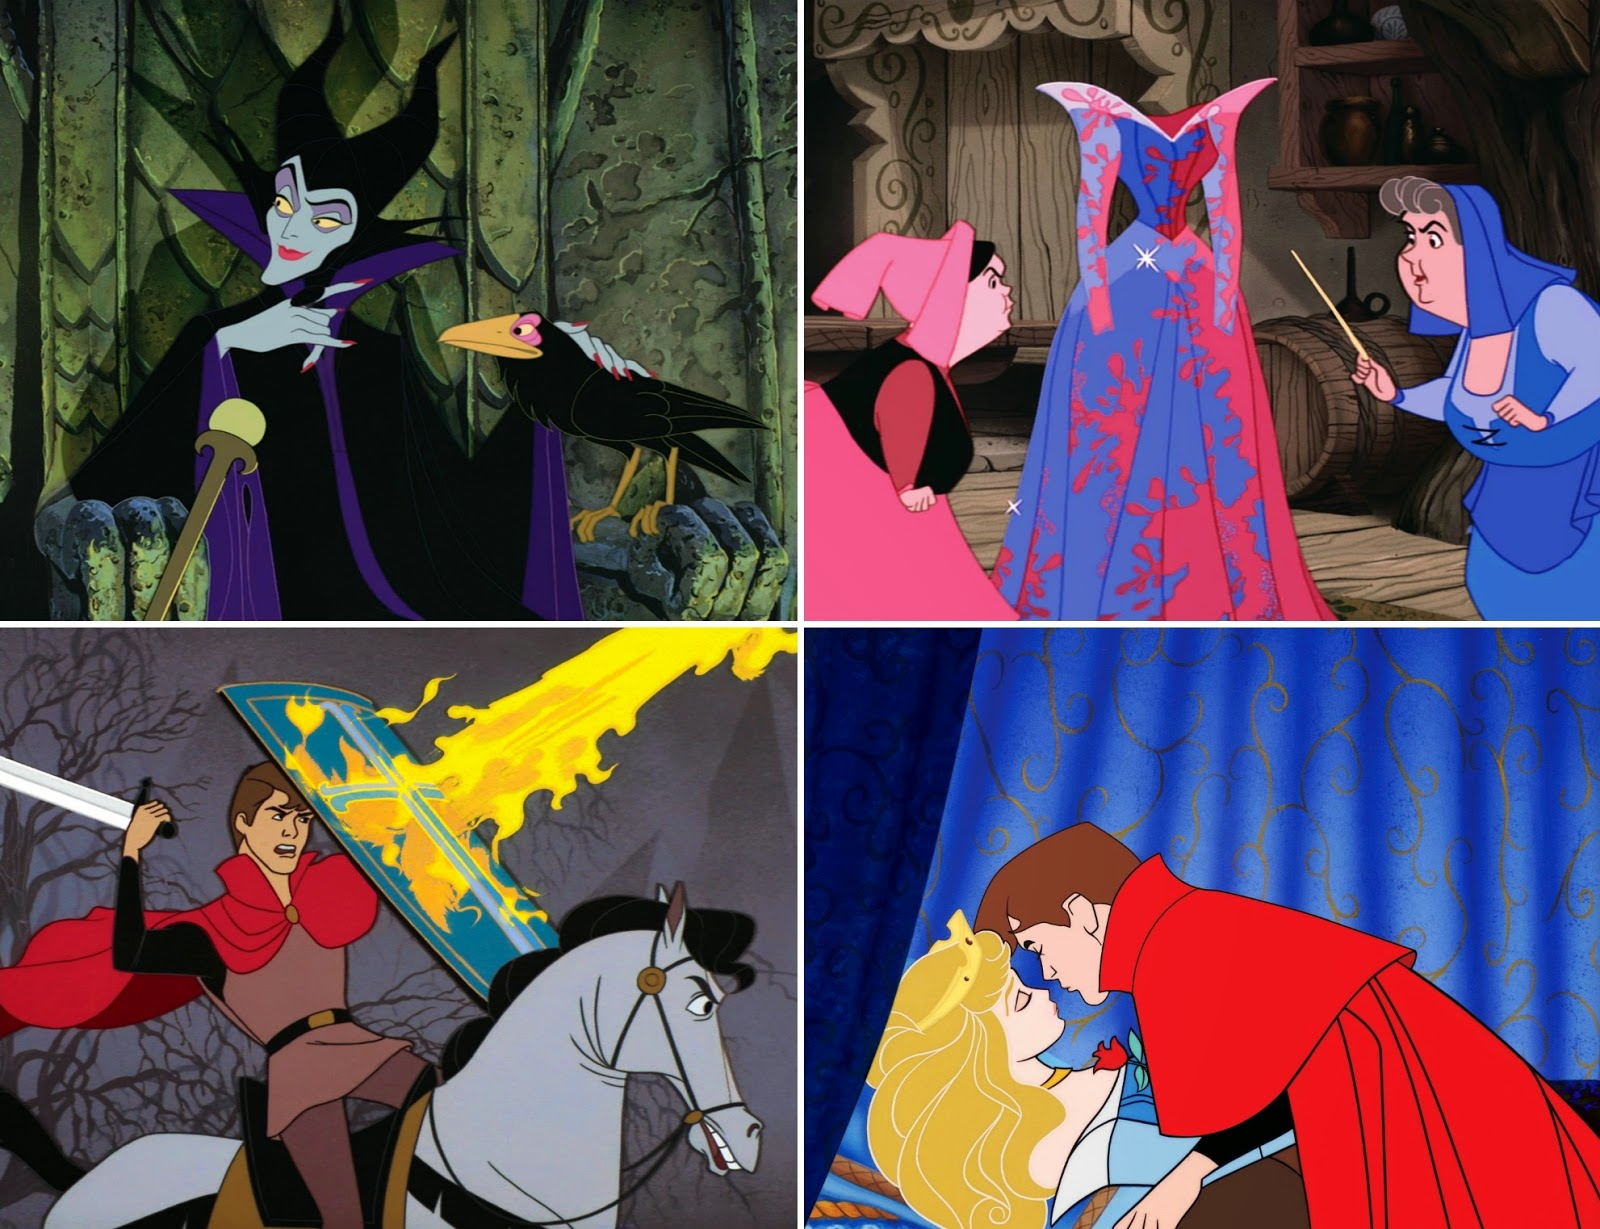 Sleeping Beauty scenes